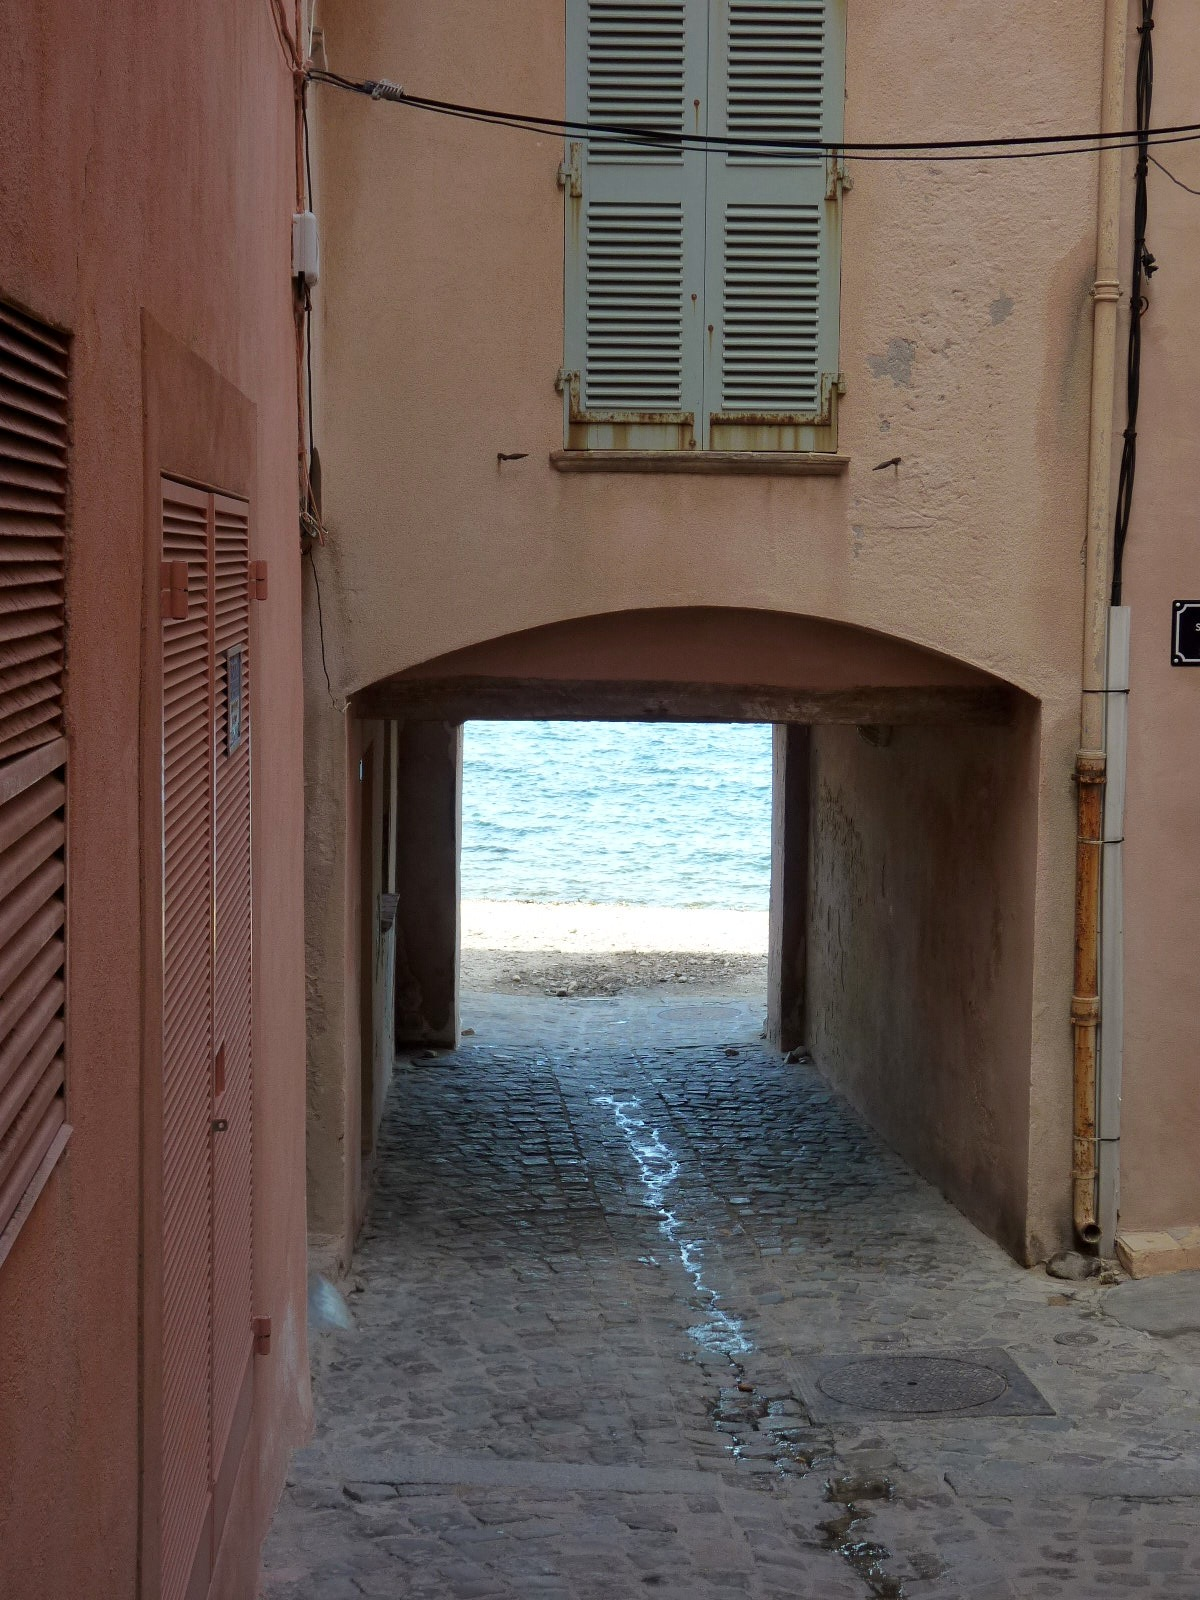 St-Tropez-passage-to-beach.jpg